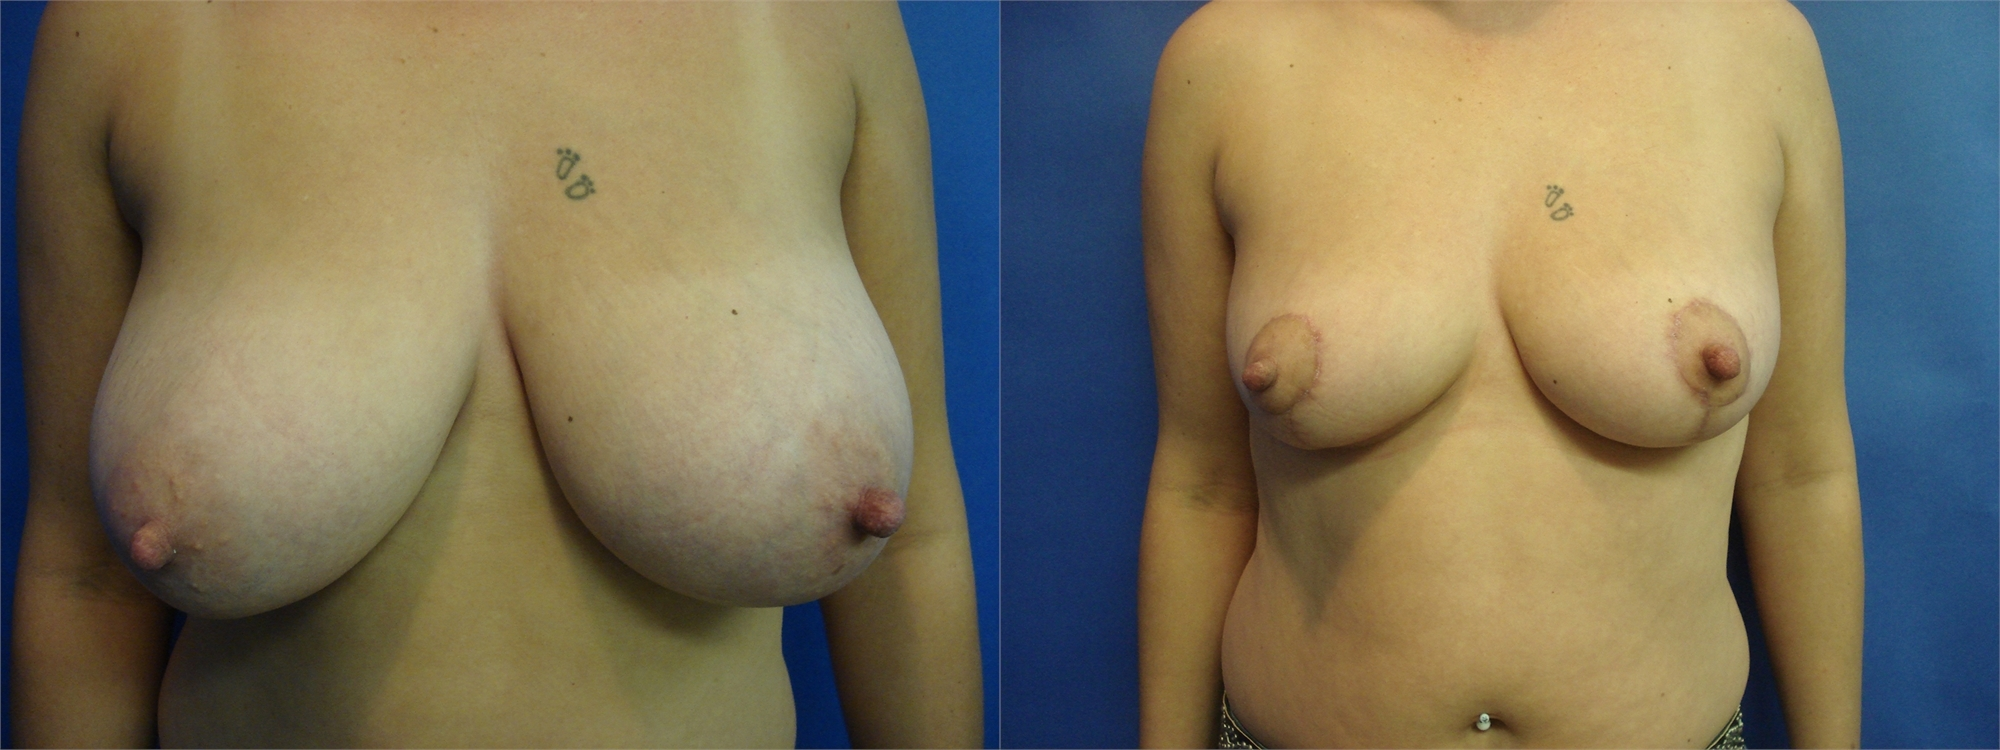 Breast Lift Before and After Photos Tacoma, WA